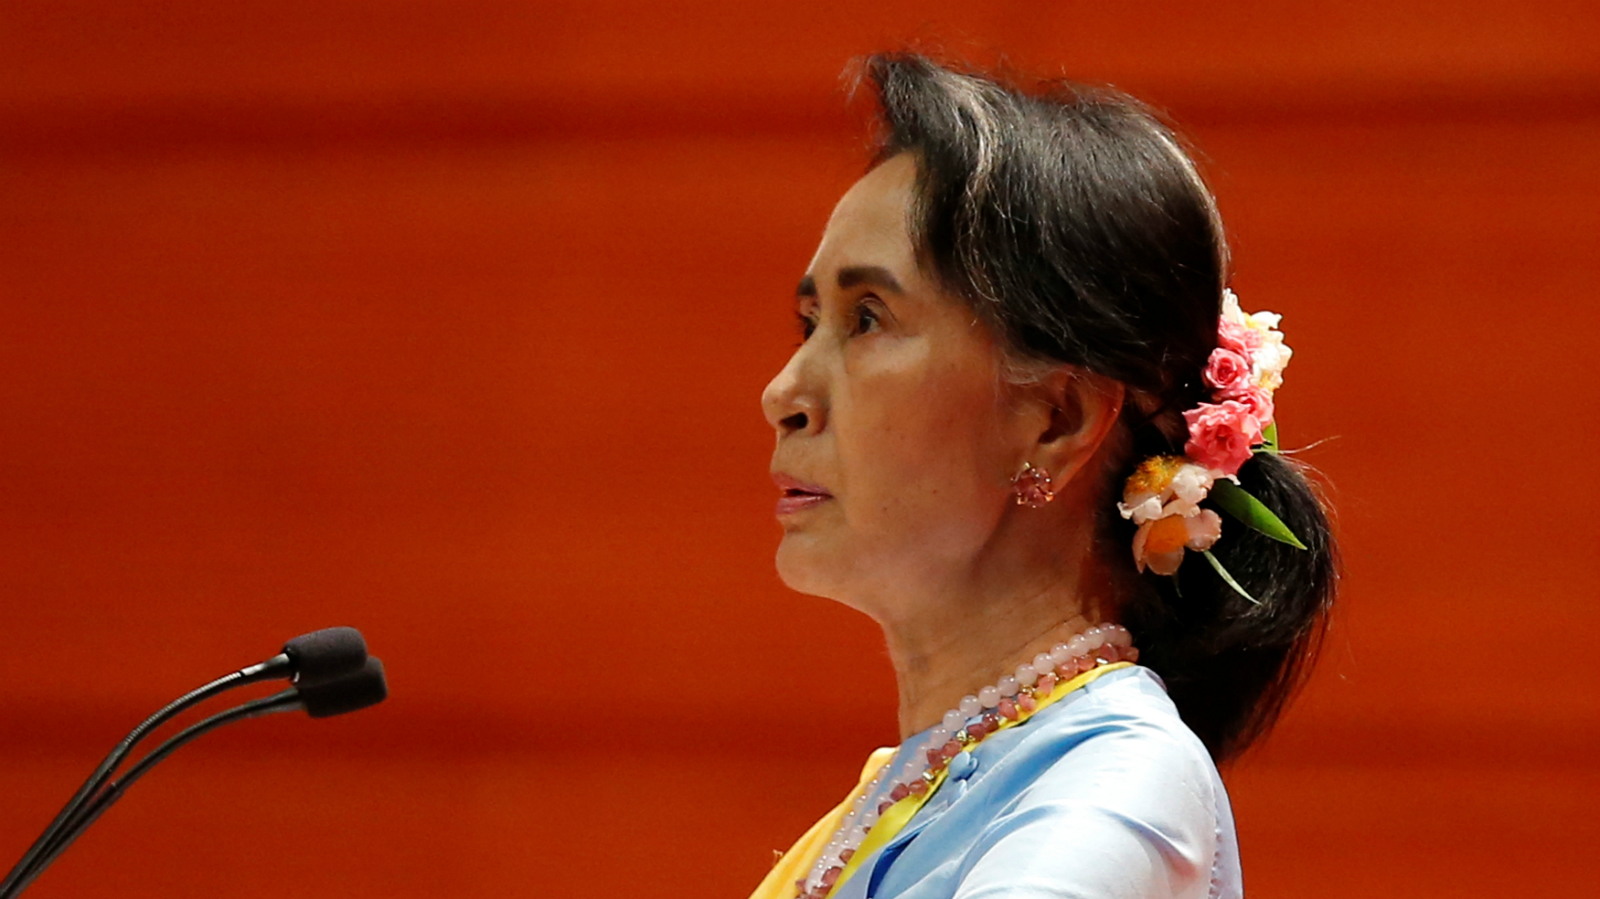 in defense of aung san suu kyi constrained by myanmar 39 s military and buddhist majority quartz. Black Bedroom Furniture Sets. Home Design Ideas